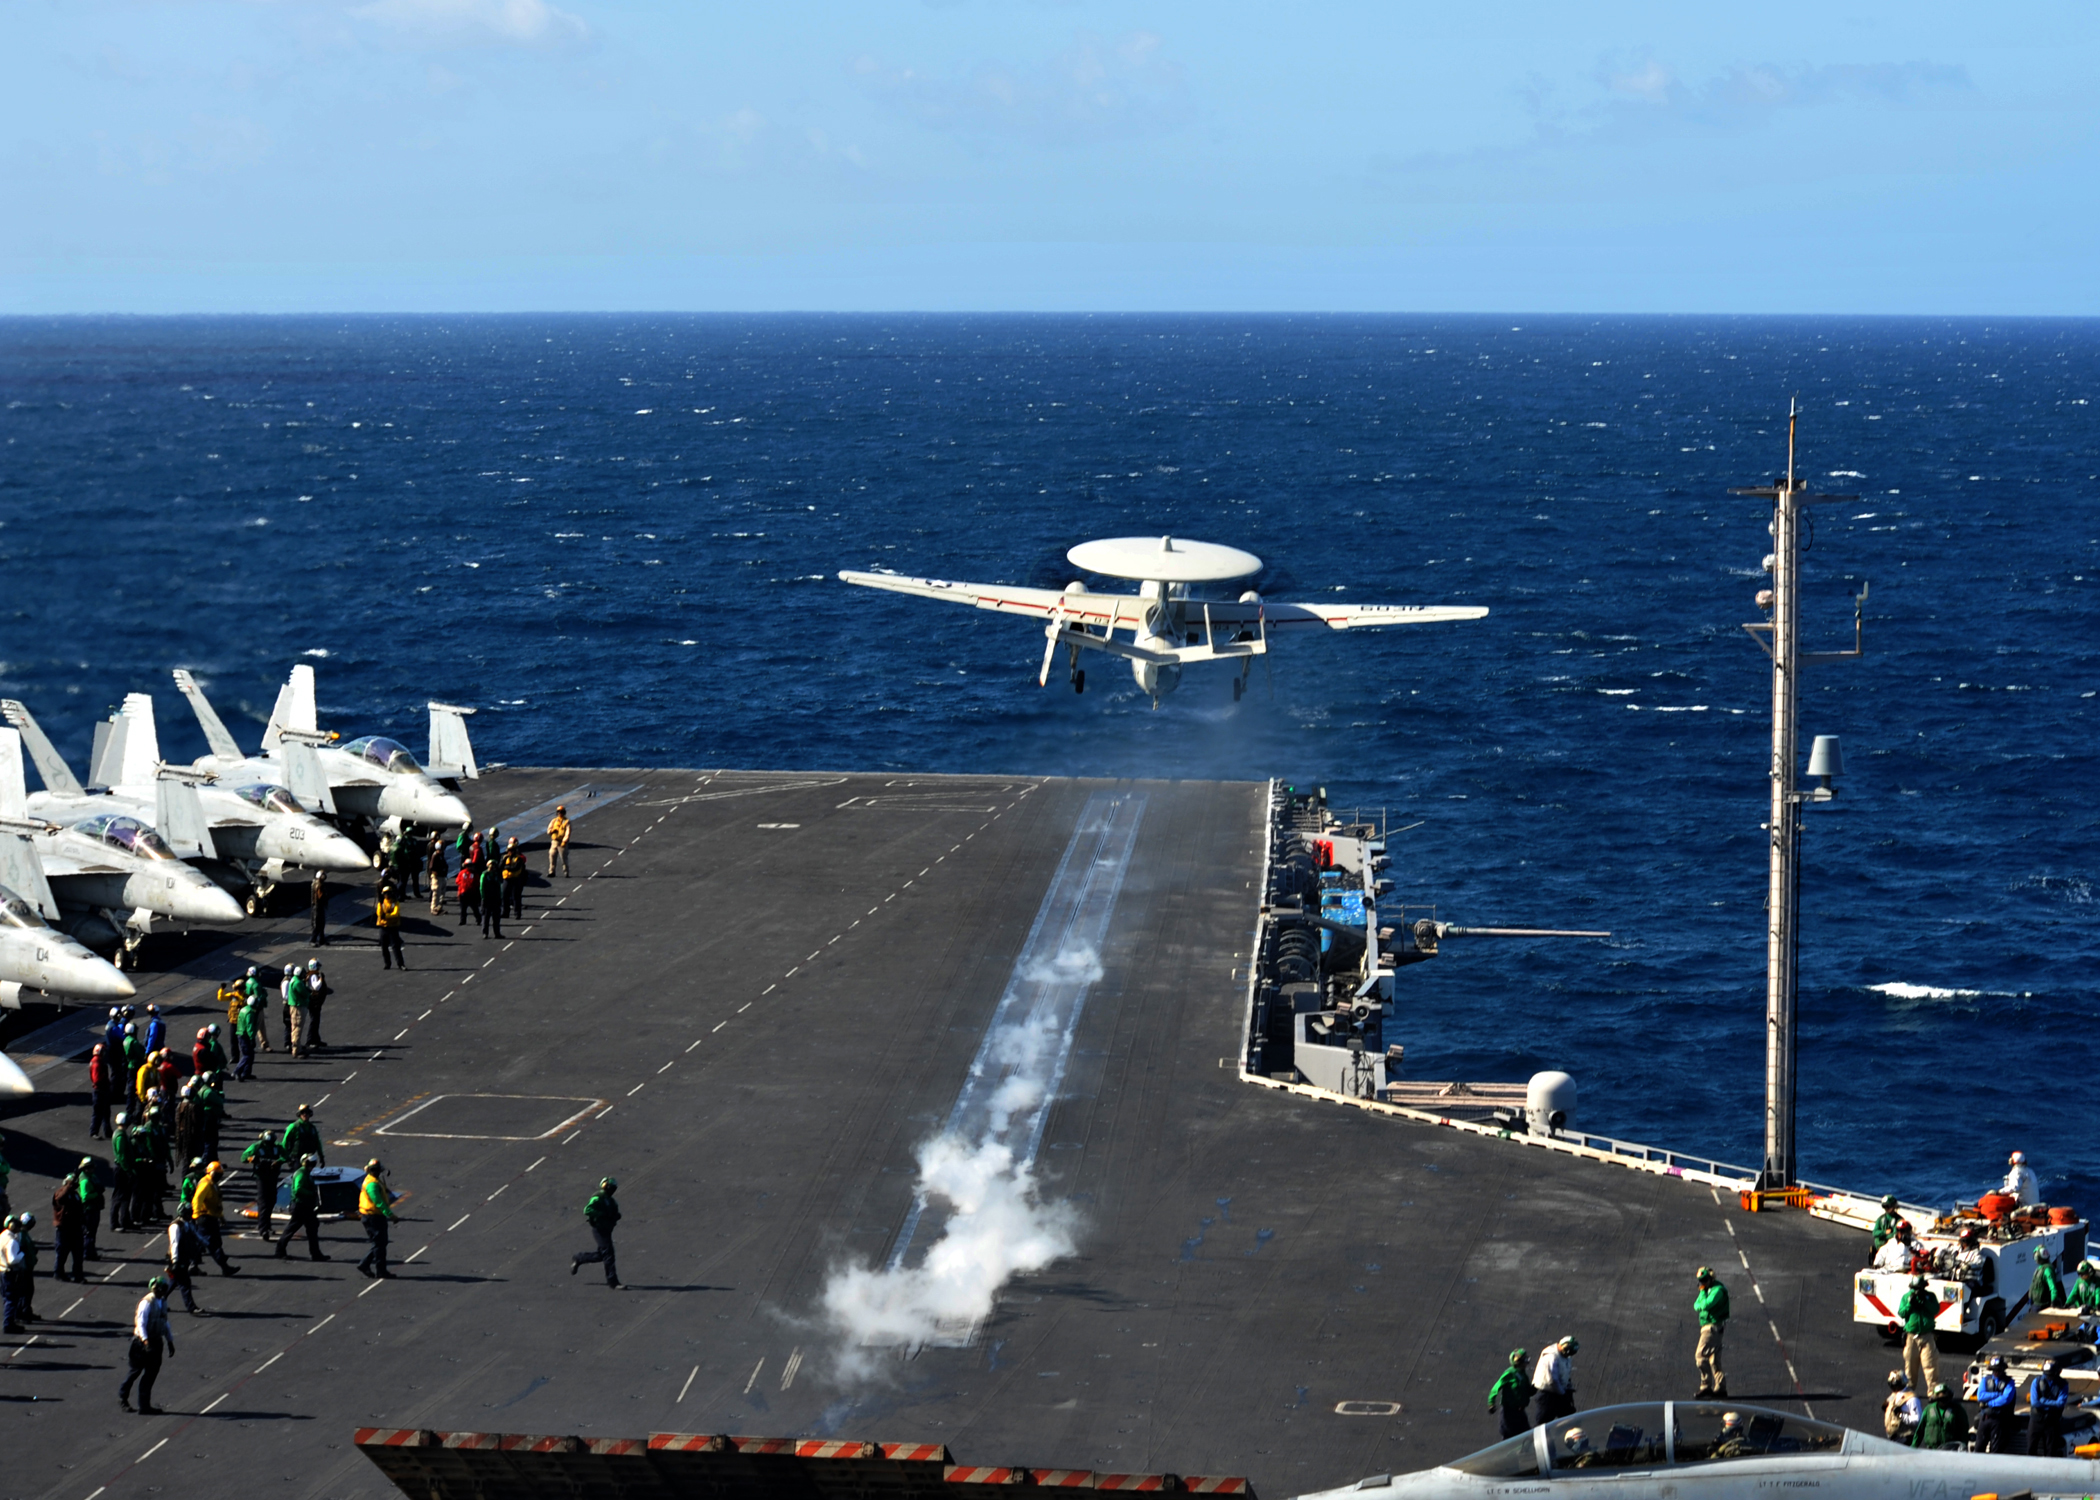 from the flight deck of the Nimitz-class aircraft carrier USS Abraham Lincoln (CVN 72). Abraham Lincoln is underway conducting a composite training unit